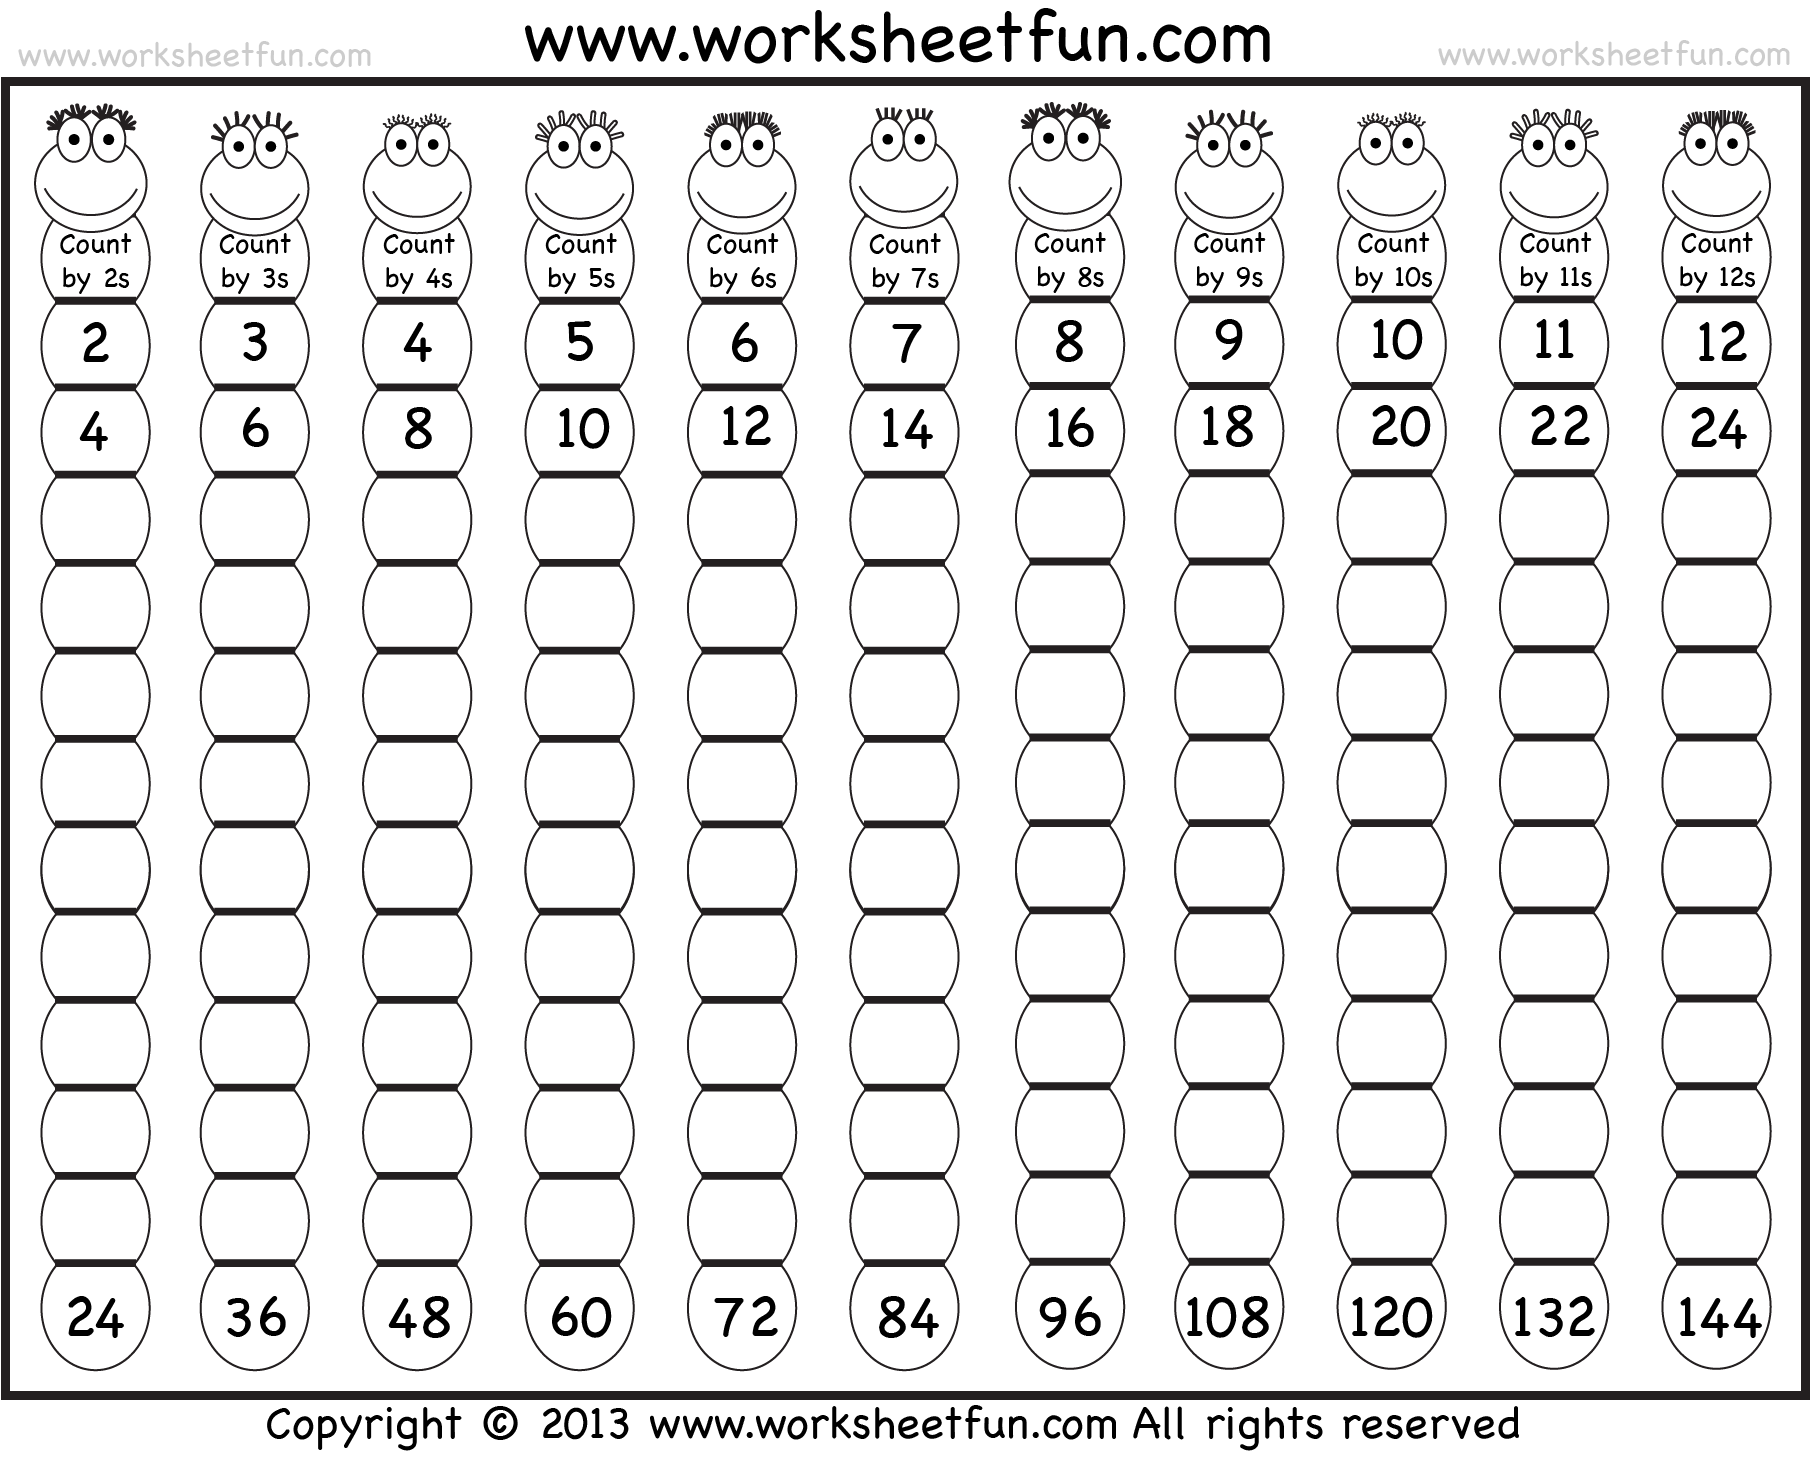 Multiplication Table Printable 1 12 Pdf Microfinanceindia